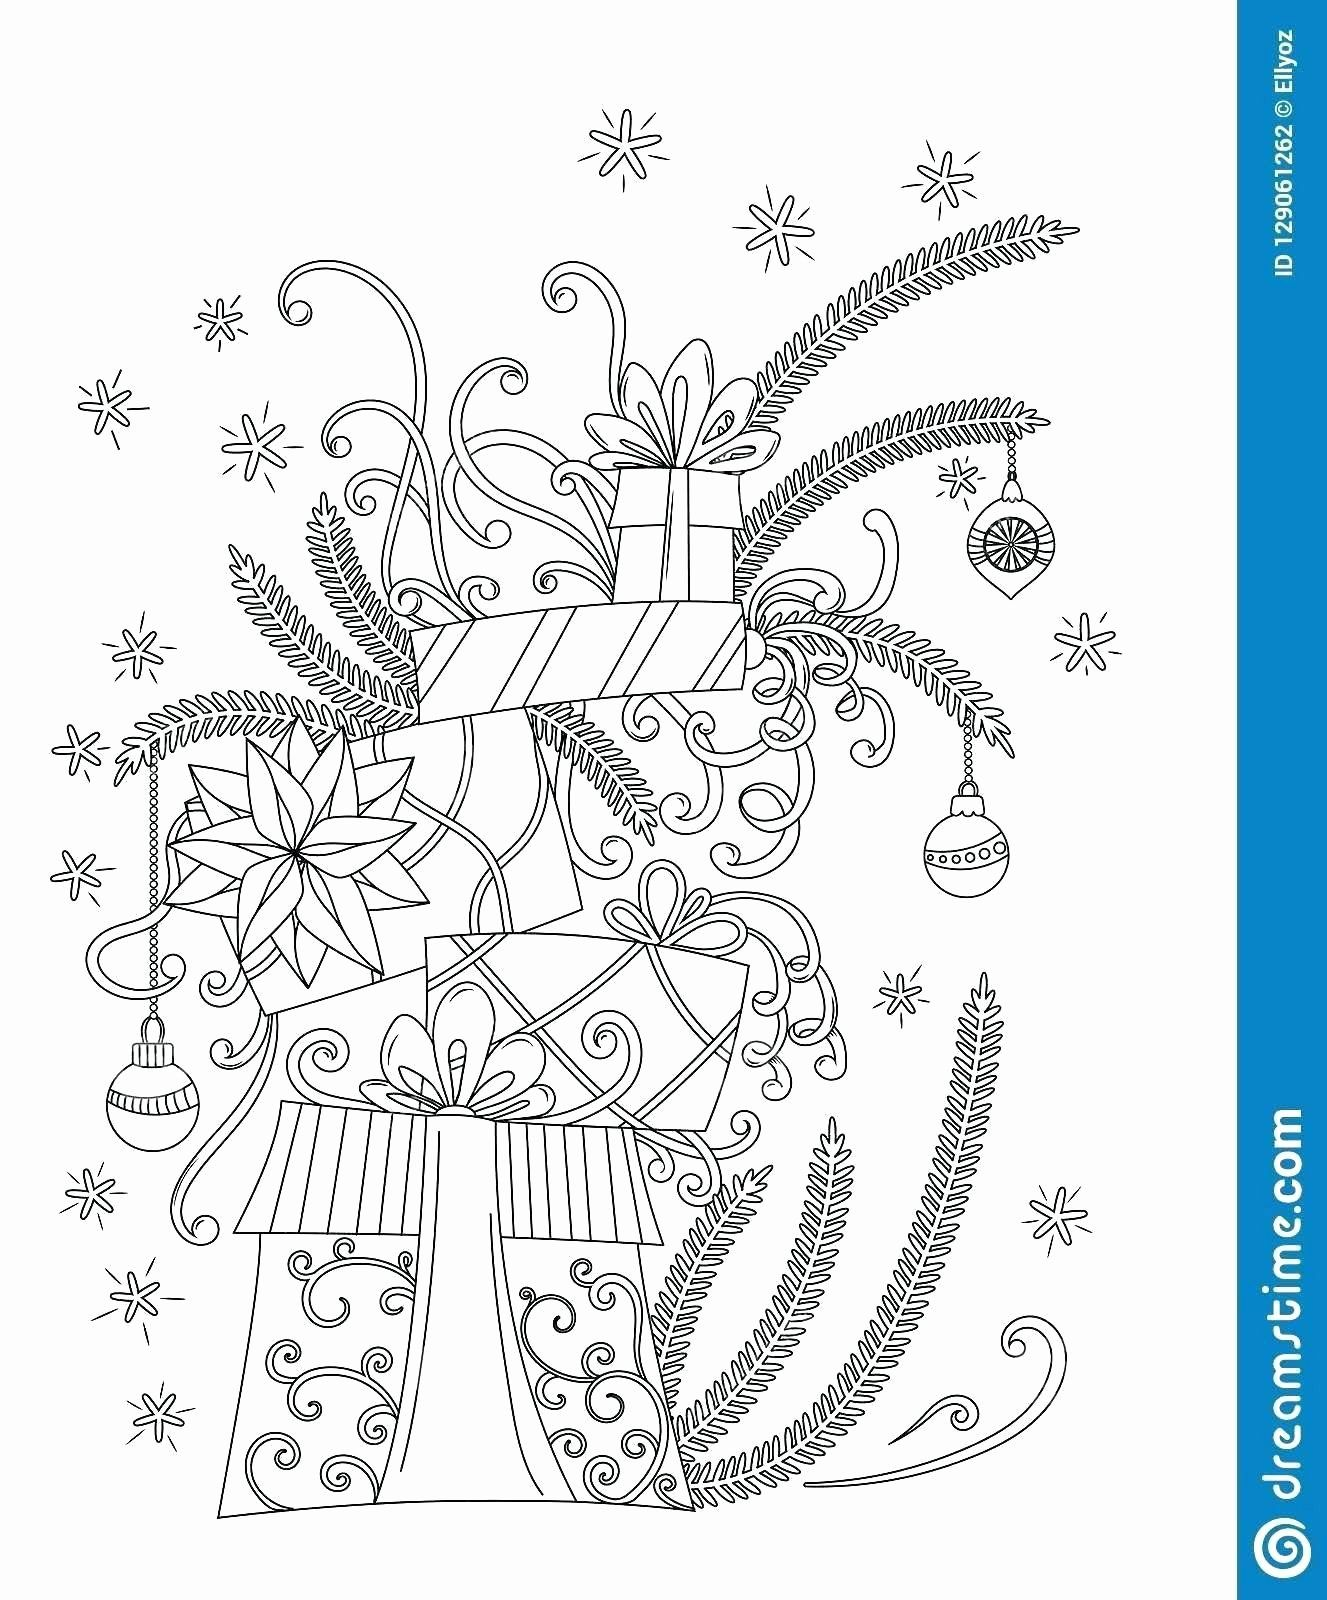 Holiday Coloring Books For Adults Unique Holiday Coloring Books For Adults Inspirationa In 2021 Holiday Coloring Book Christmas Coloring Books Christmas Coloring Pages